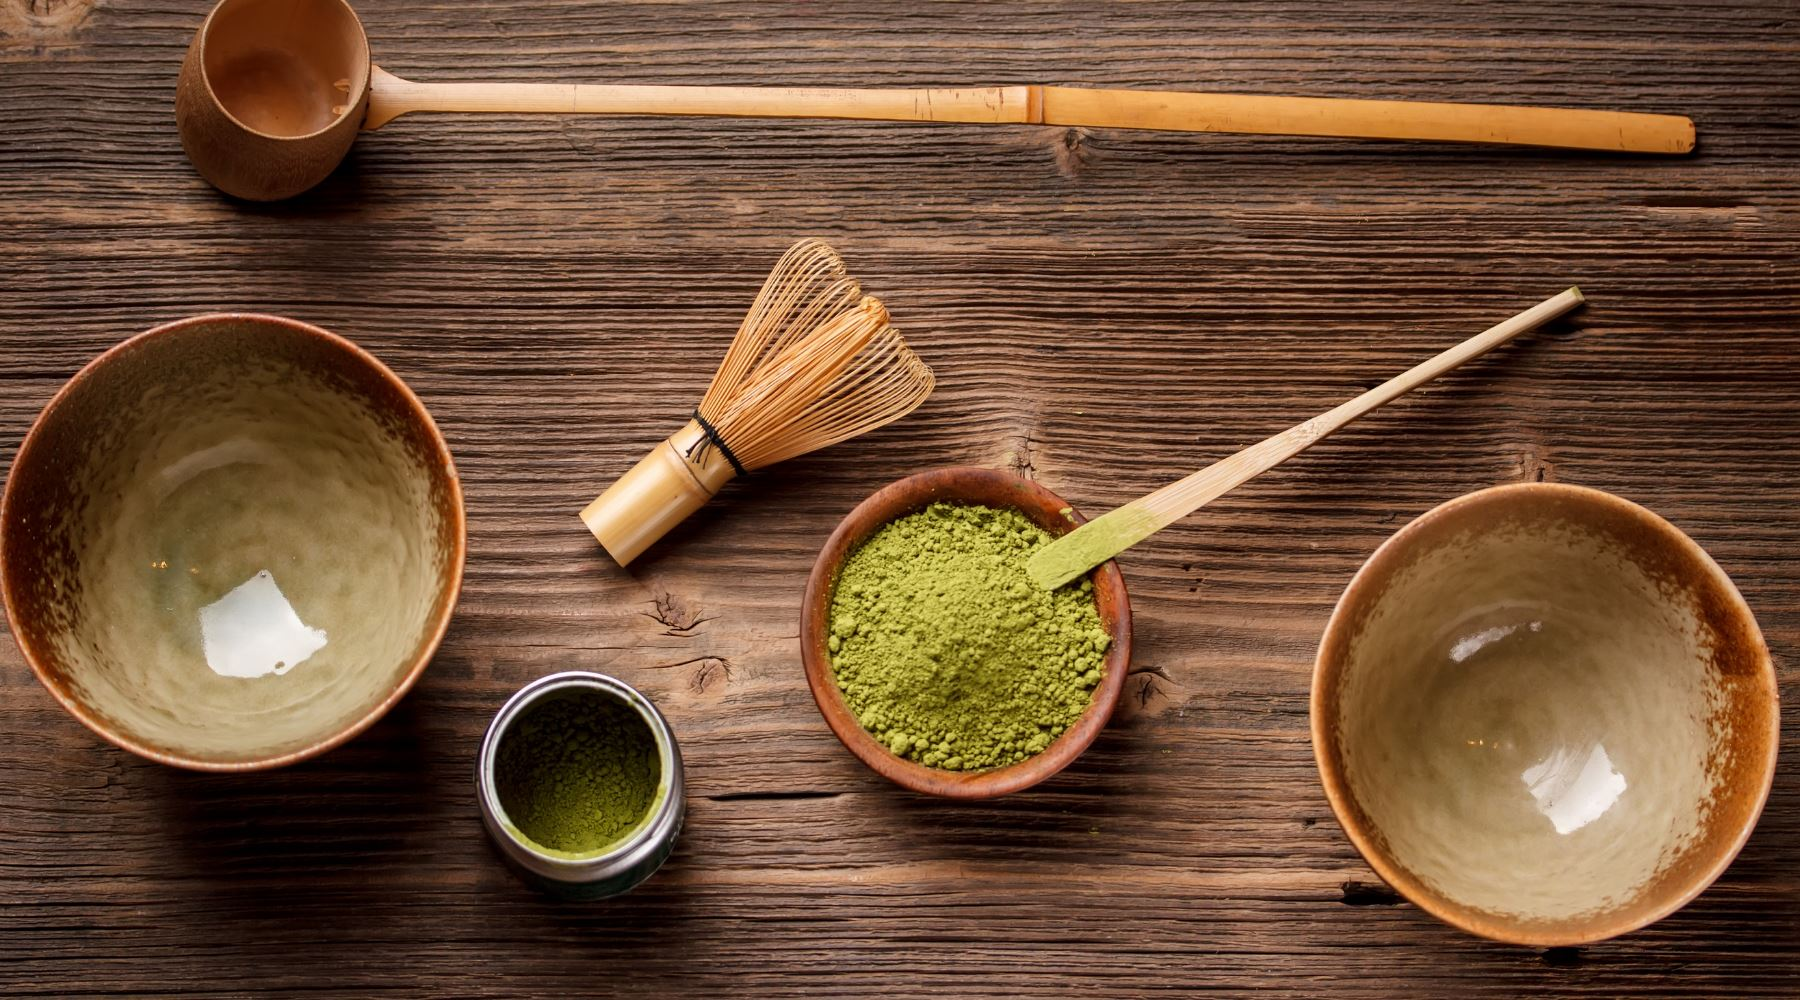 Matcha Tea Kits